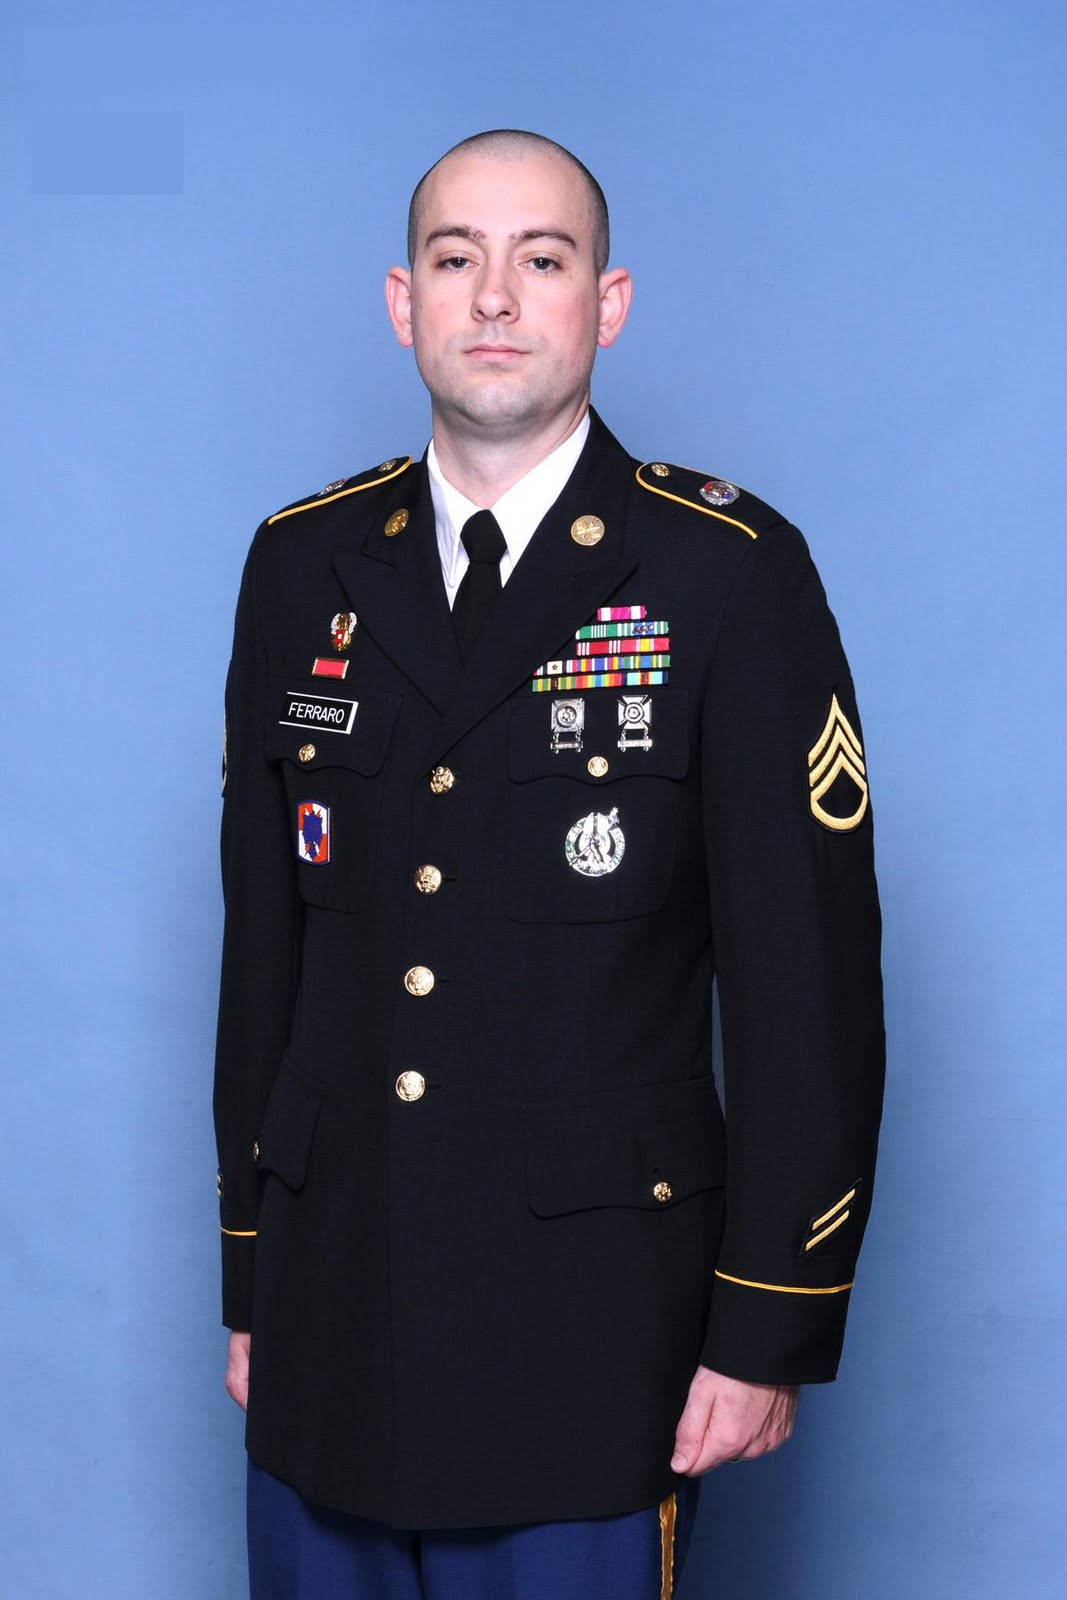 columbia recruiting battalion local sgt ferraro recommended for ssg ferraro